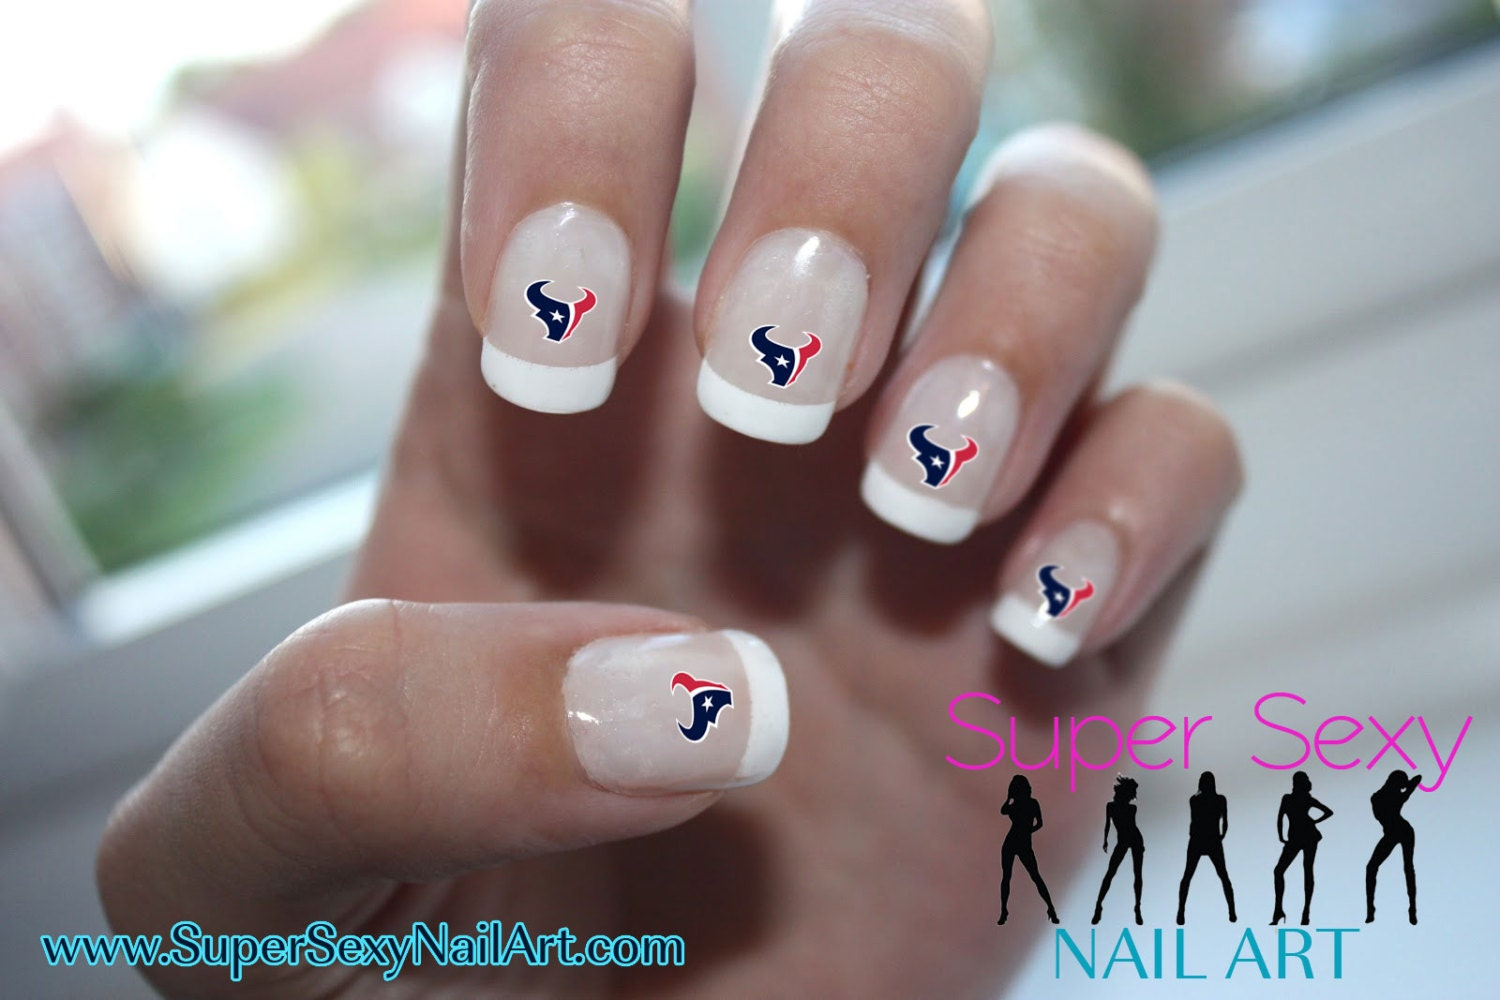 ... Nail Ar t Water Transfer Decal - Waterslide Paper - Water Slide Paper